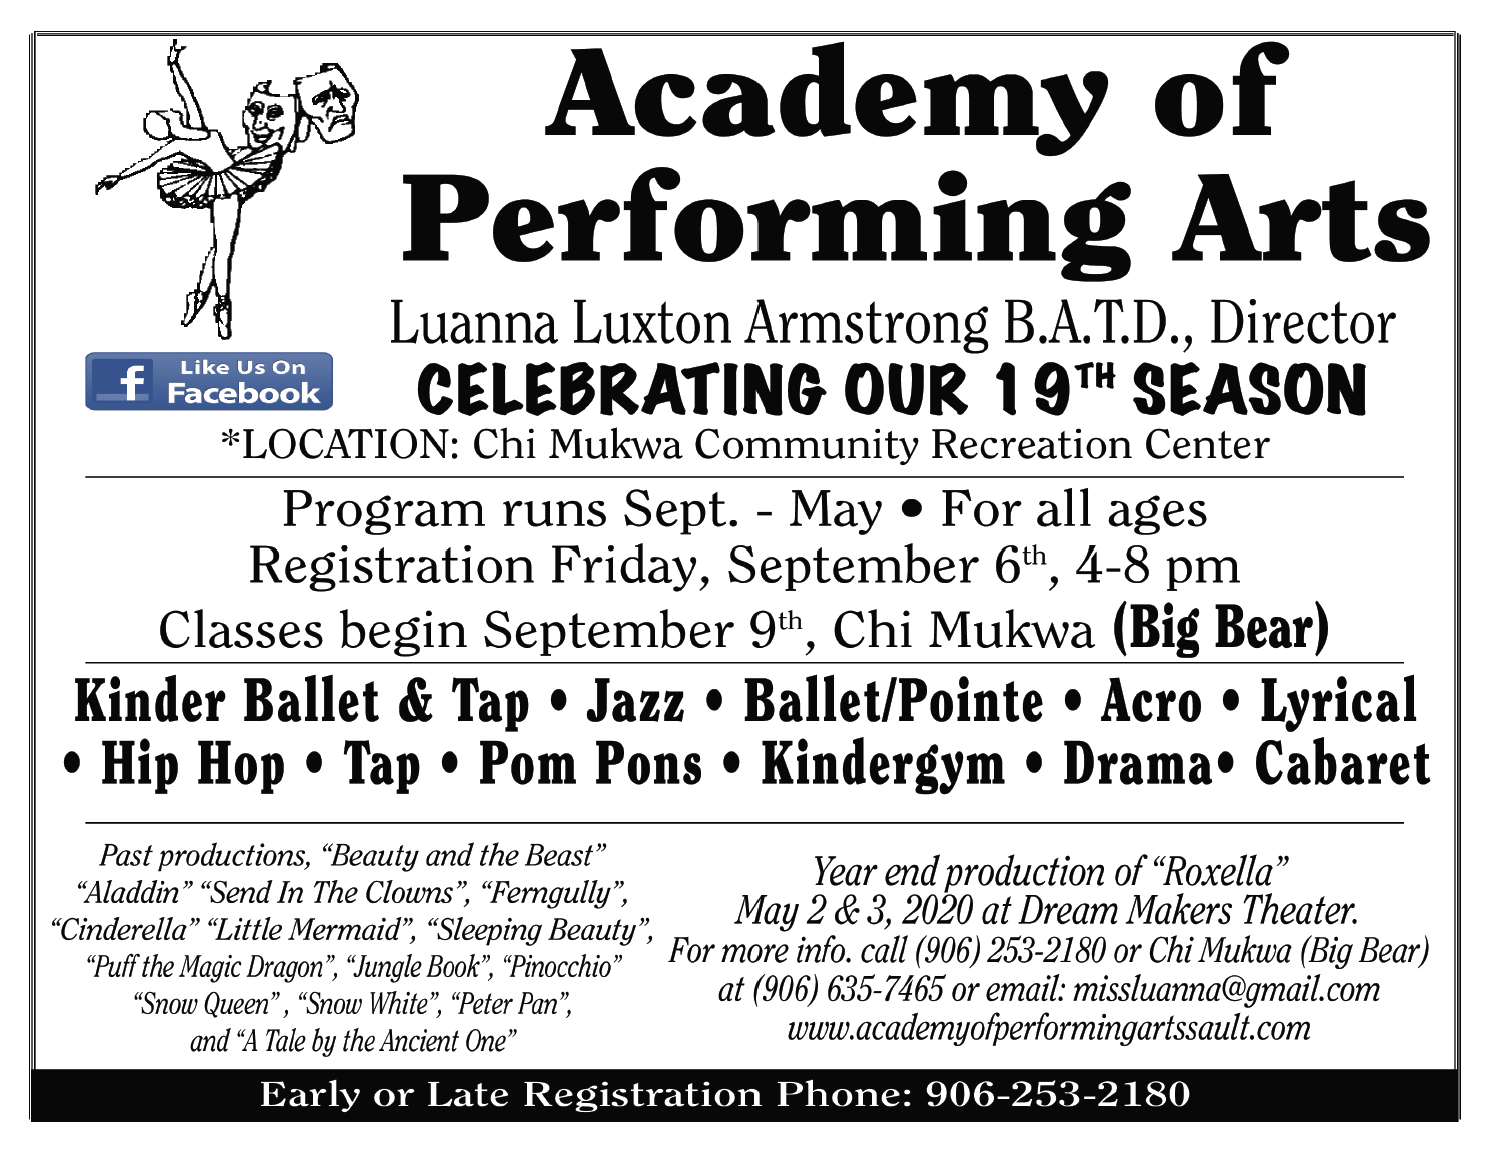 Academy of Performing Arts: Register Sep 6, 2019